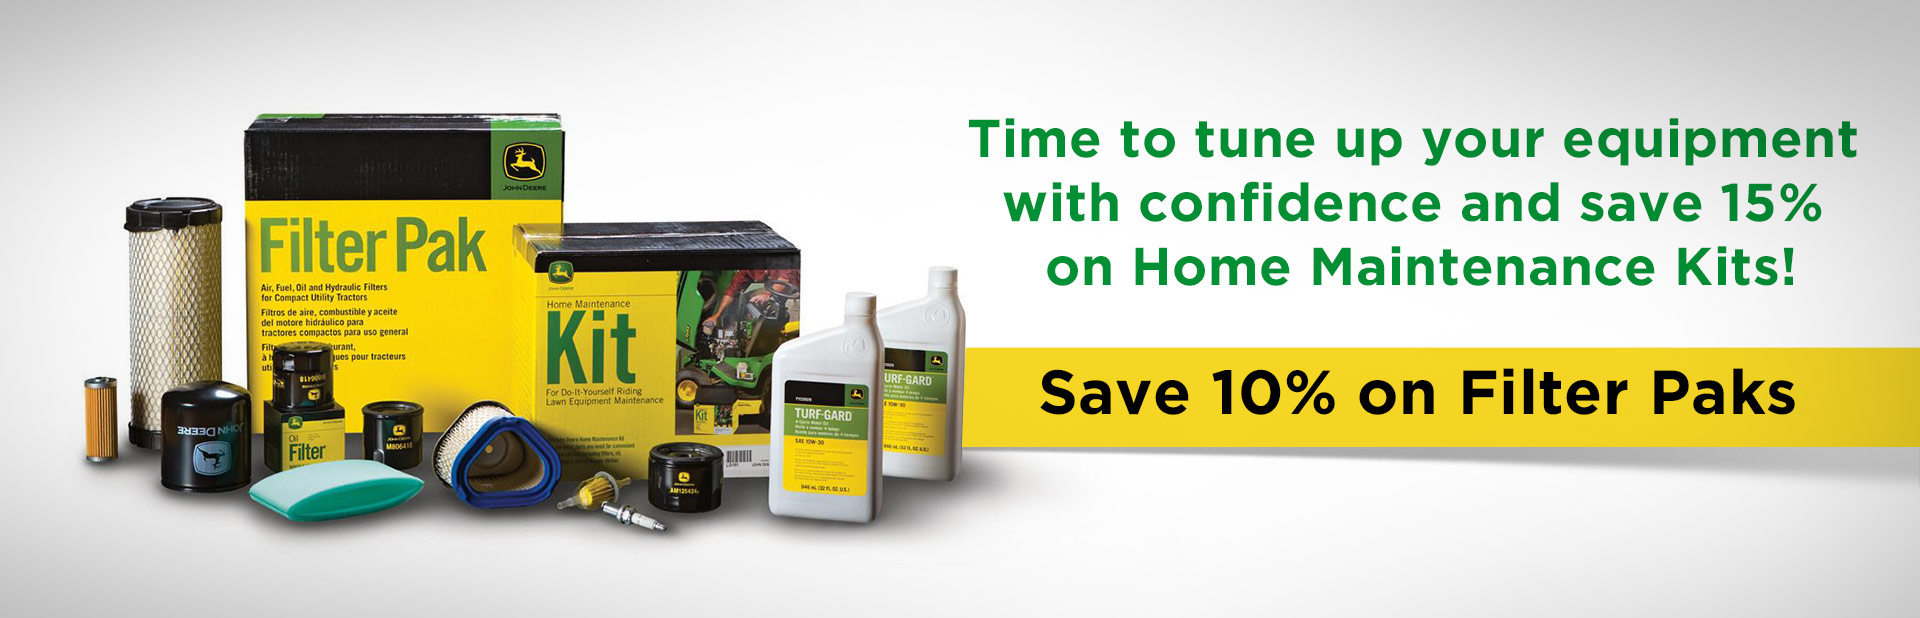 Time to tune up your equipment with confidence and save 15% on John Deere Home Maintenance Kits, plus save 10% on John Deere Filter Paks!